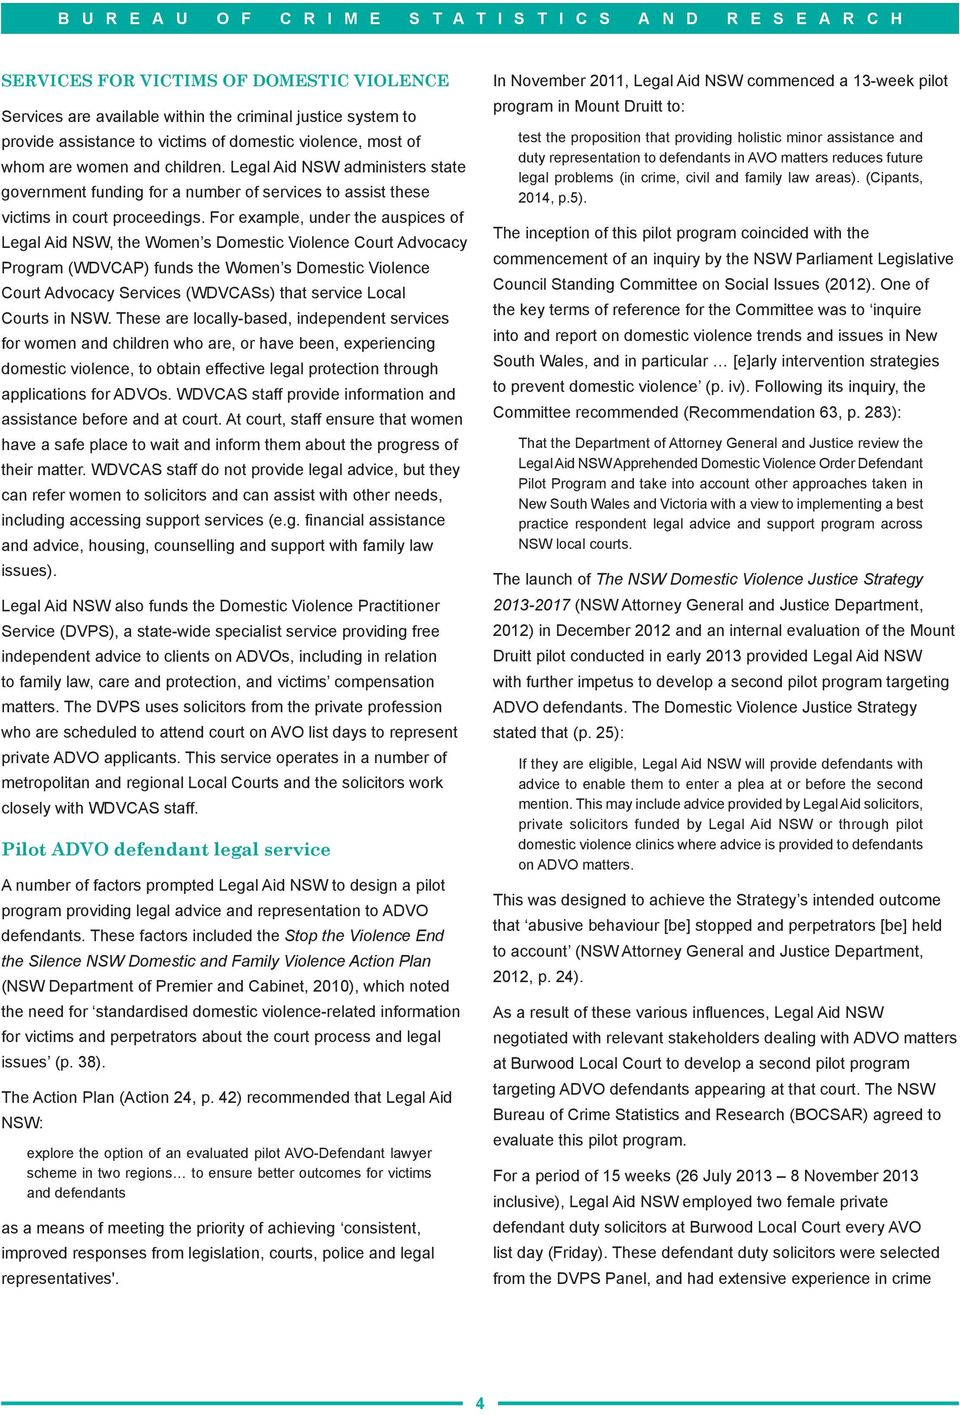 For example, under the auspices of Legal Aid NSW, the Women s Domestic Violence Court Advocacy Program (WDVCAP) funds the Women s Domestic Violence Court Advocacy Services (WDVCASs) that service